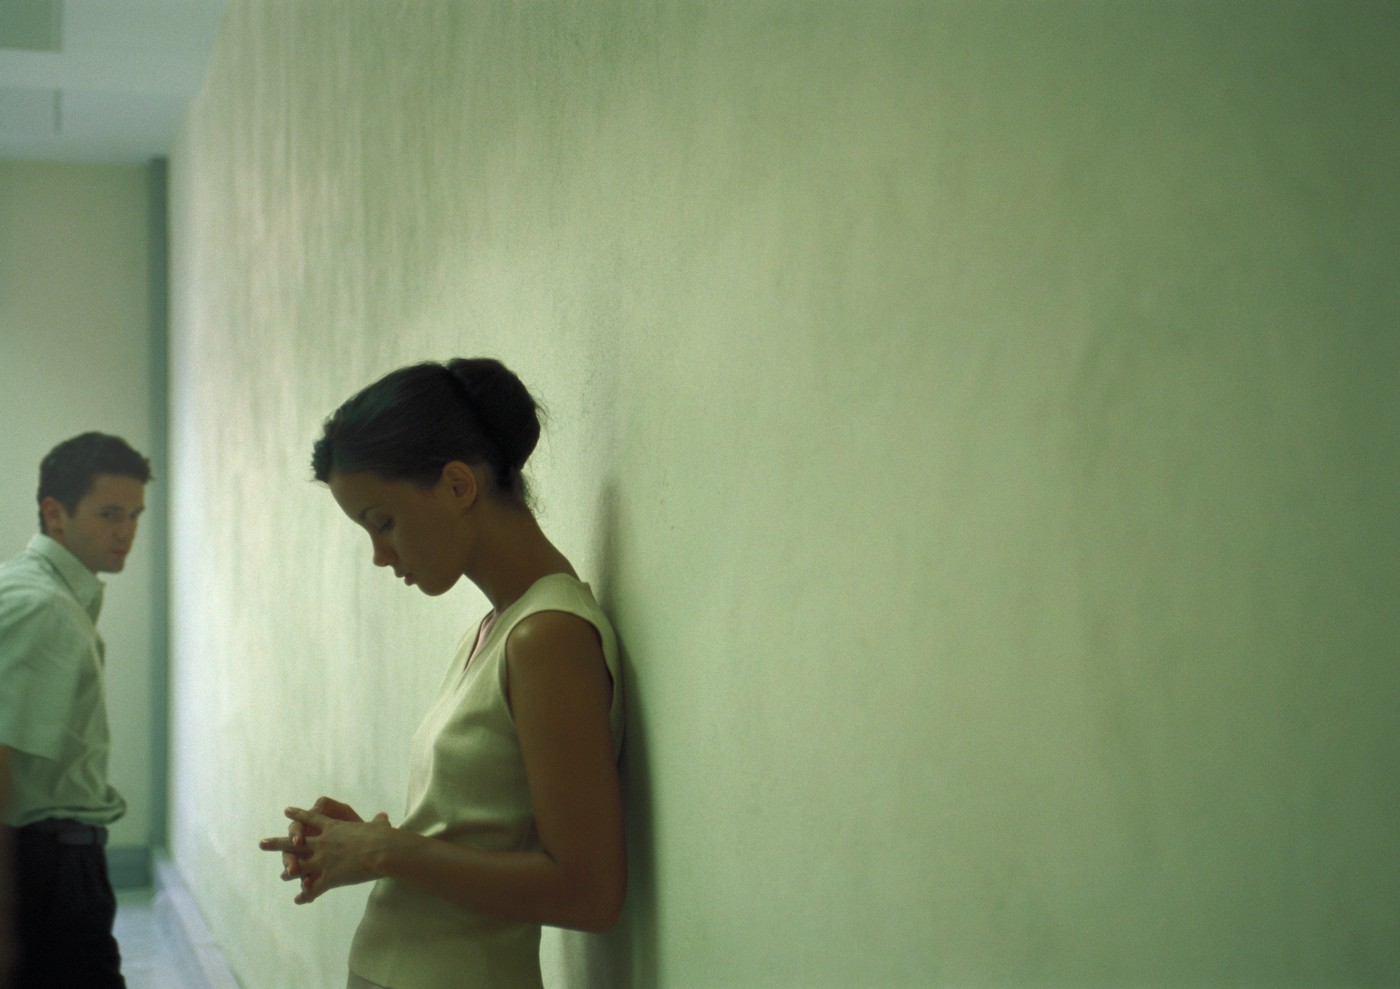 A photo of a woman leaning against a wall as a man looks back at her from the corner.